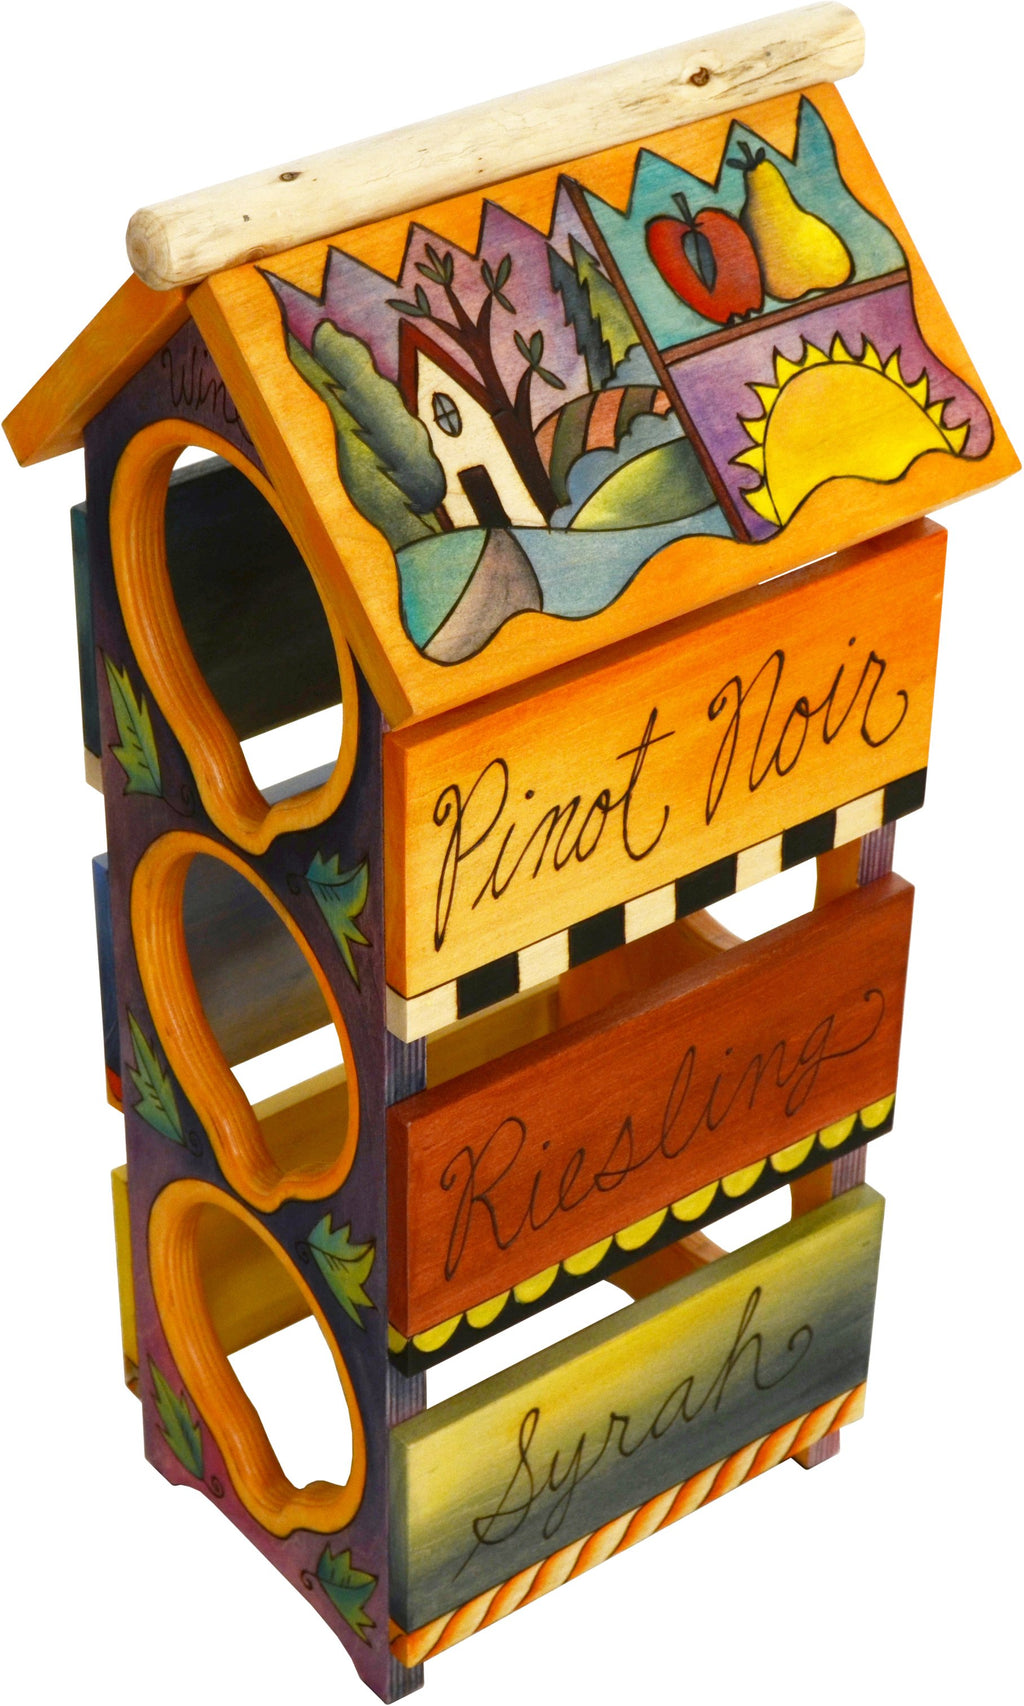 Sticks handmade wine rack with colorful life icons featuring pinot noir, champagne, riesling, merlot, syrah, and chardonnay